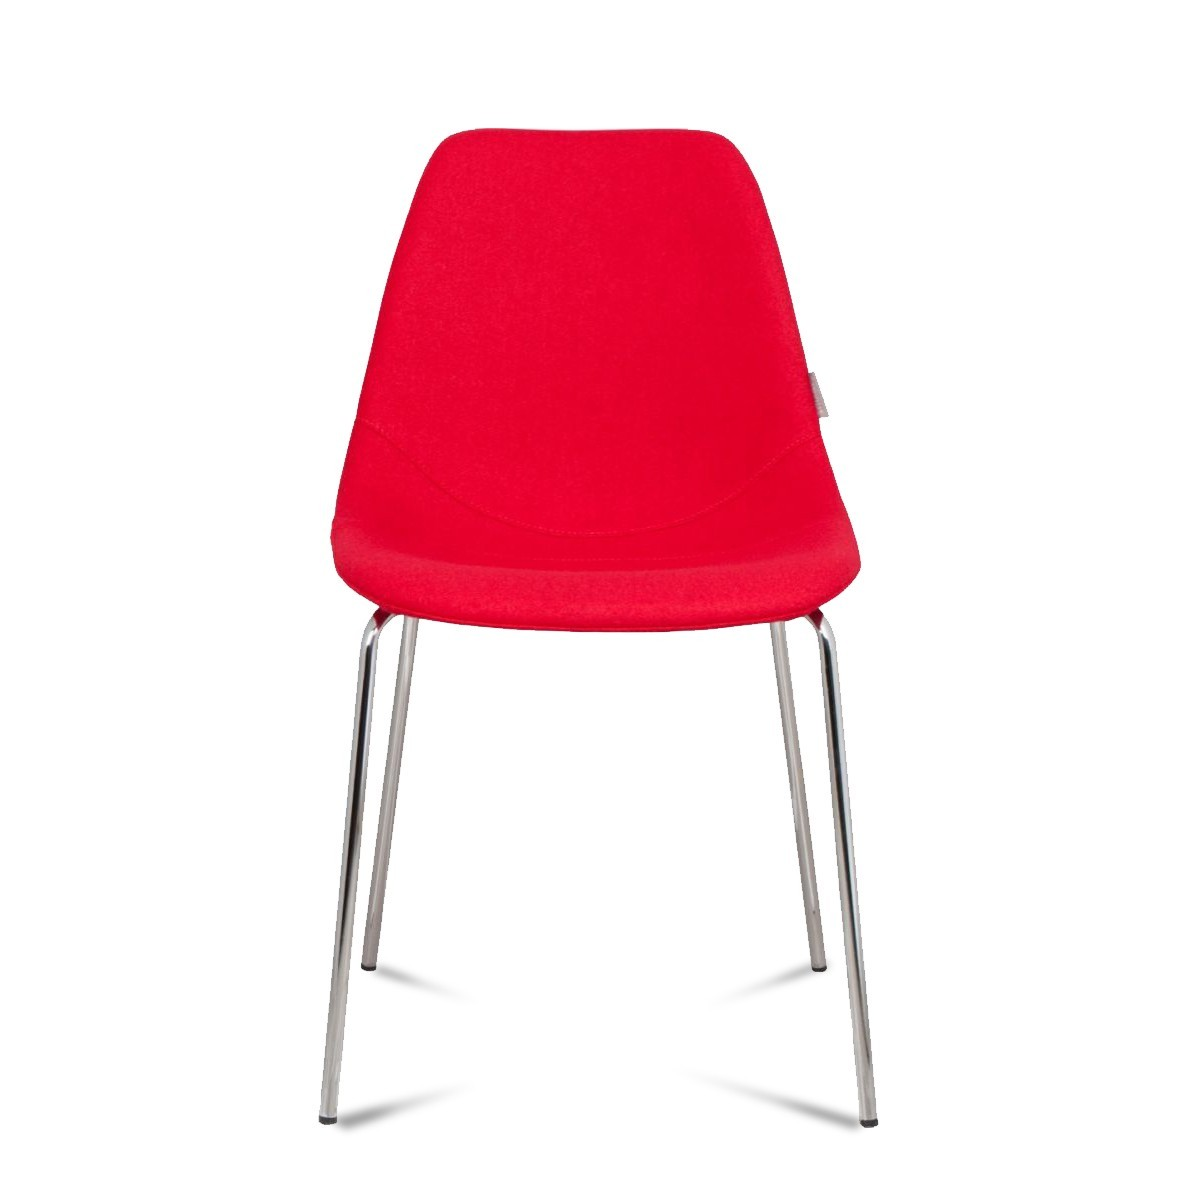 Chaise design rouge salle a manger chaise id es de for Chaise design rouge salle a manger